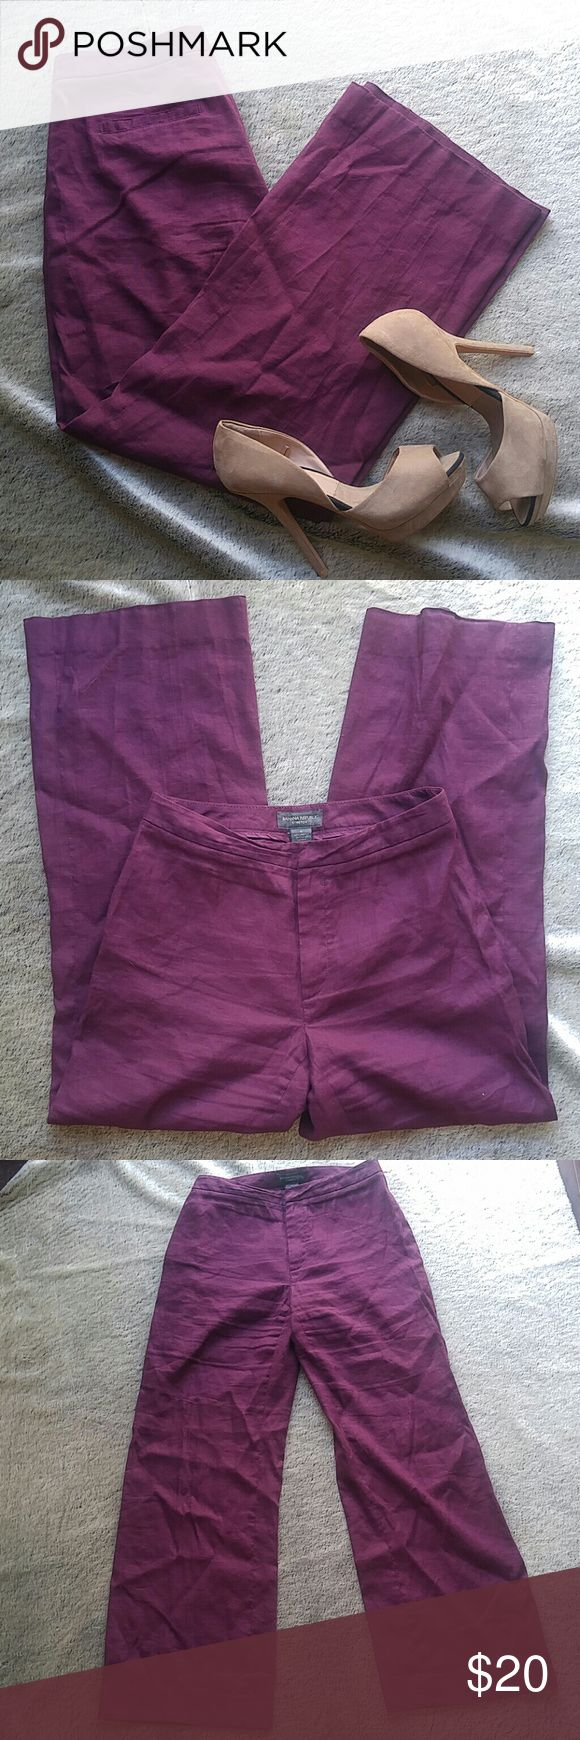 """Banana Republic stretch linen trouser Women's trouser in a deep plum purple. Size 4, with some stretch.  60% linen 38% rayon 2% spandex 29"""" inseam Excellent condition. Banana Republic Pants Trousers"""